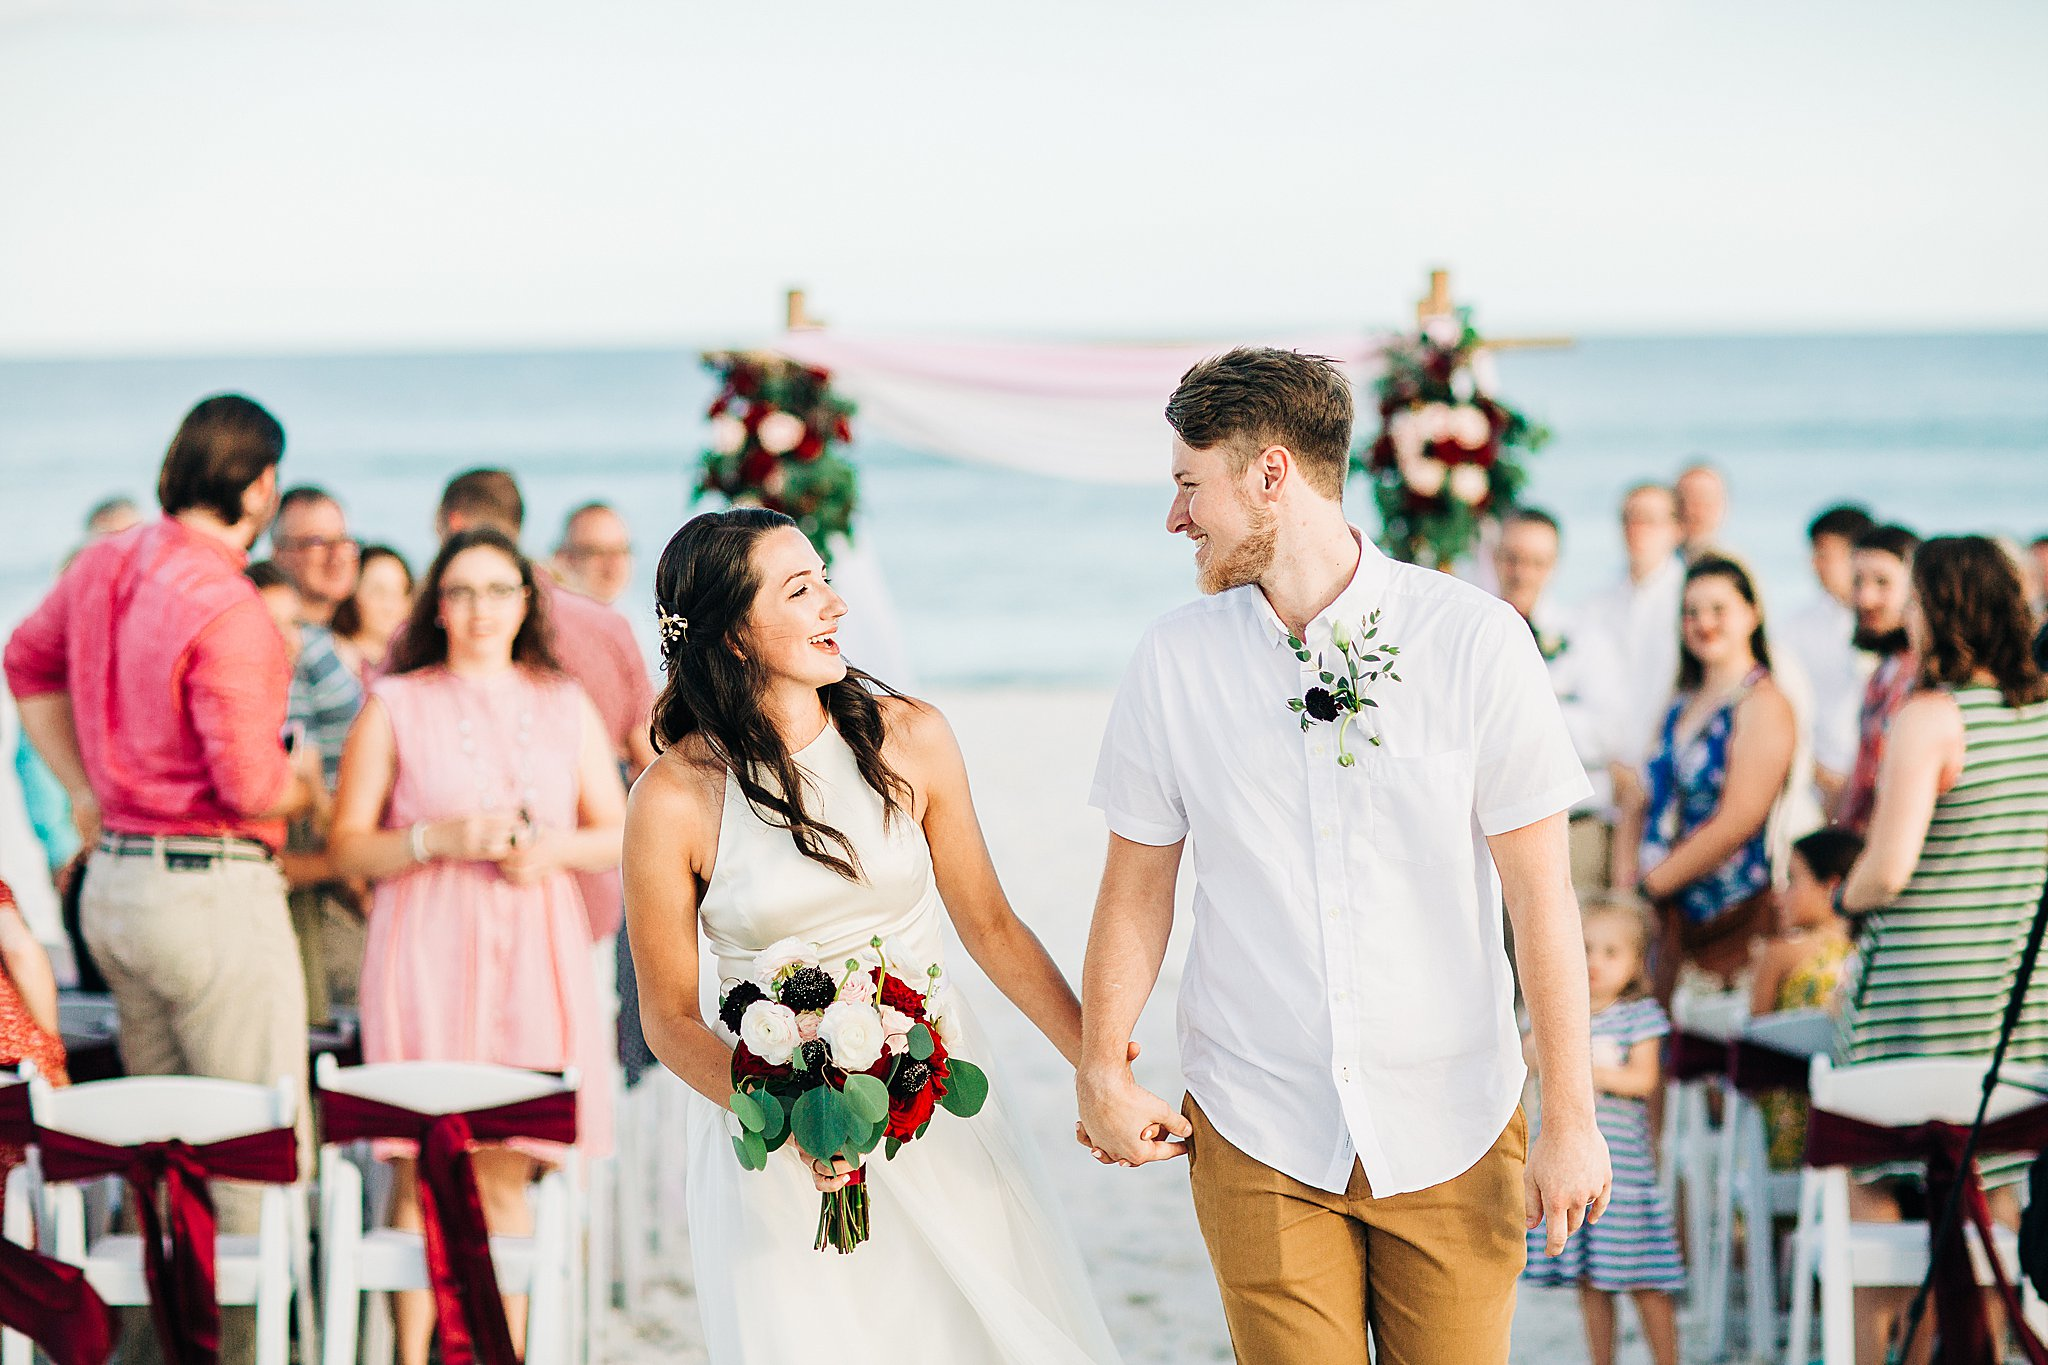 Happily married in Pensacola Beach